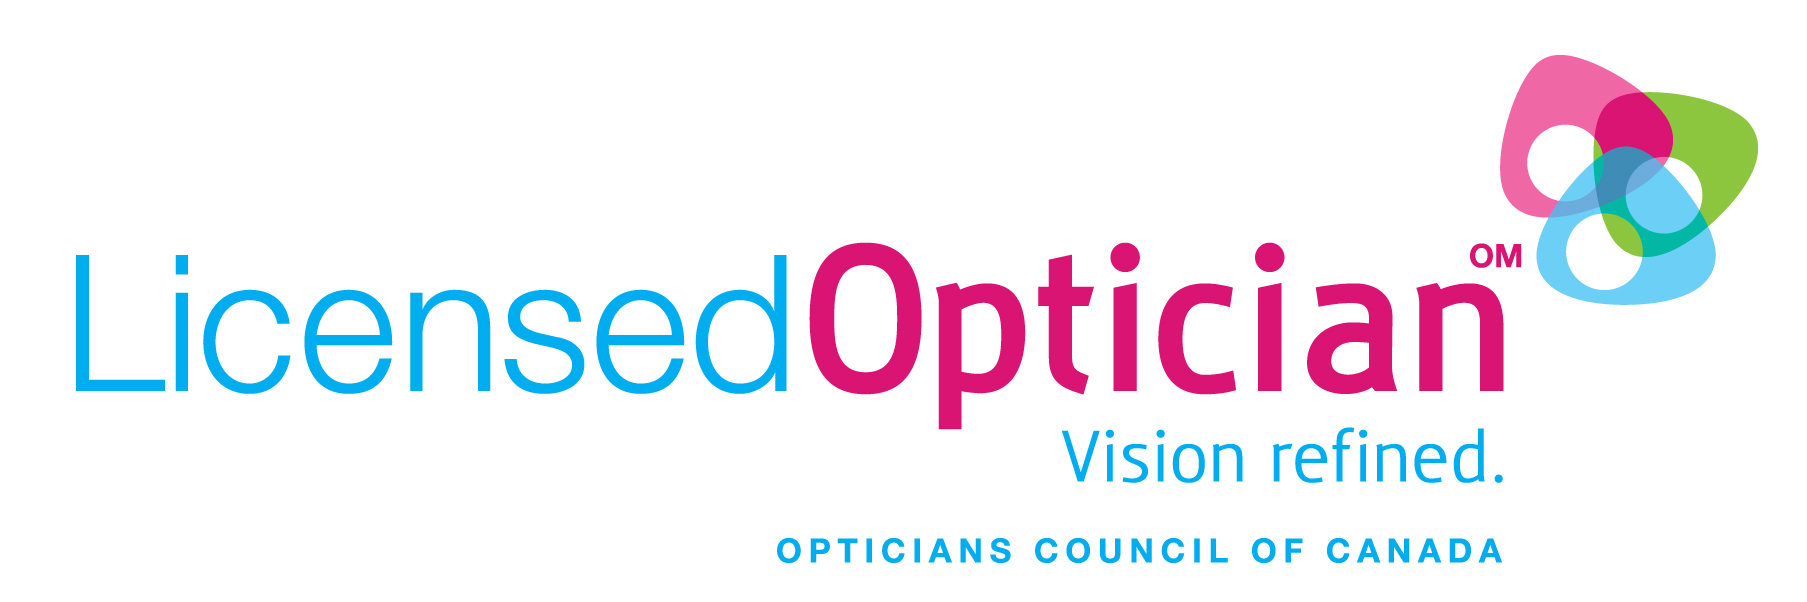 licensed optician